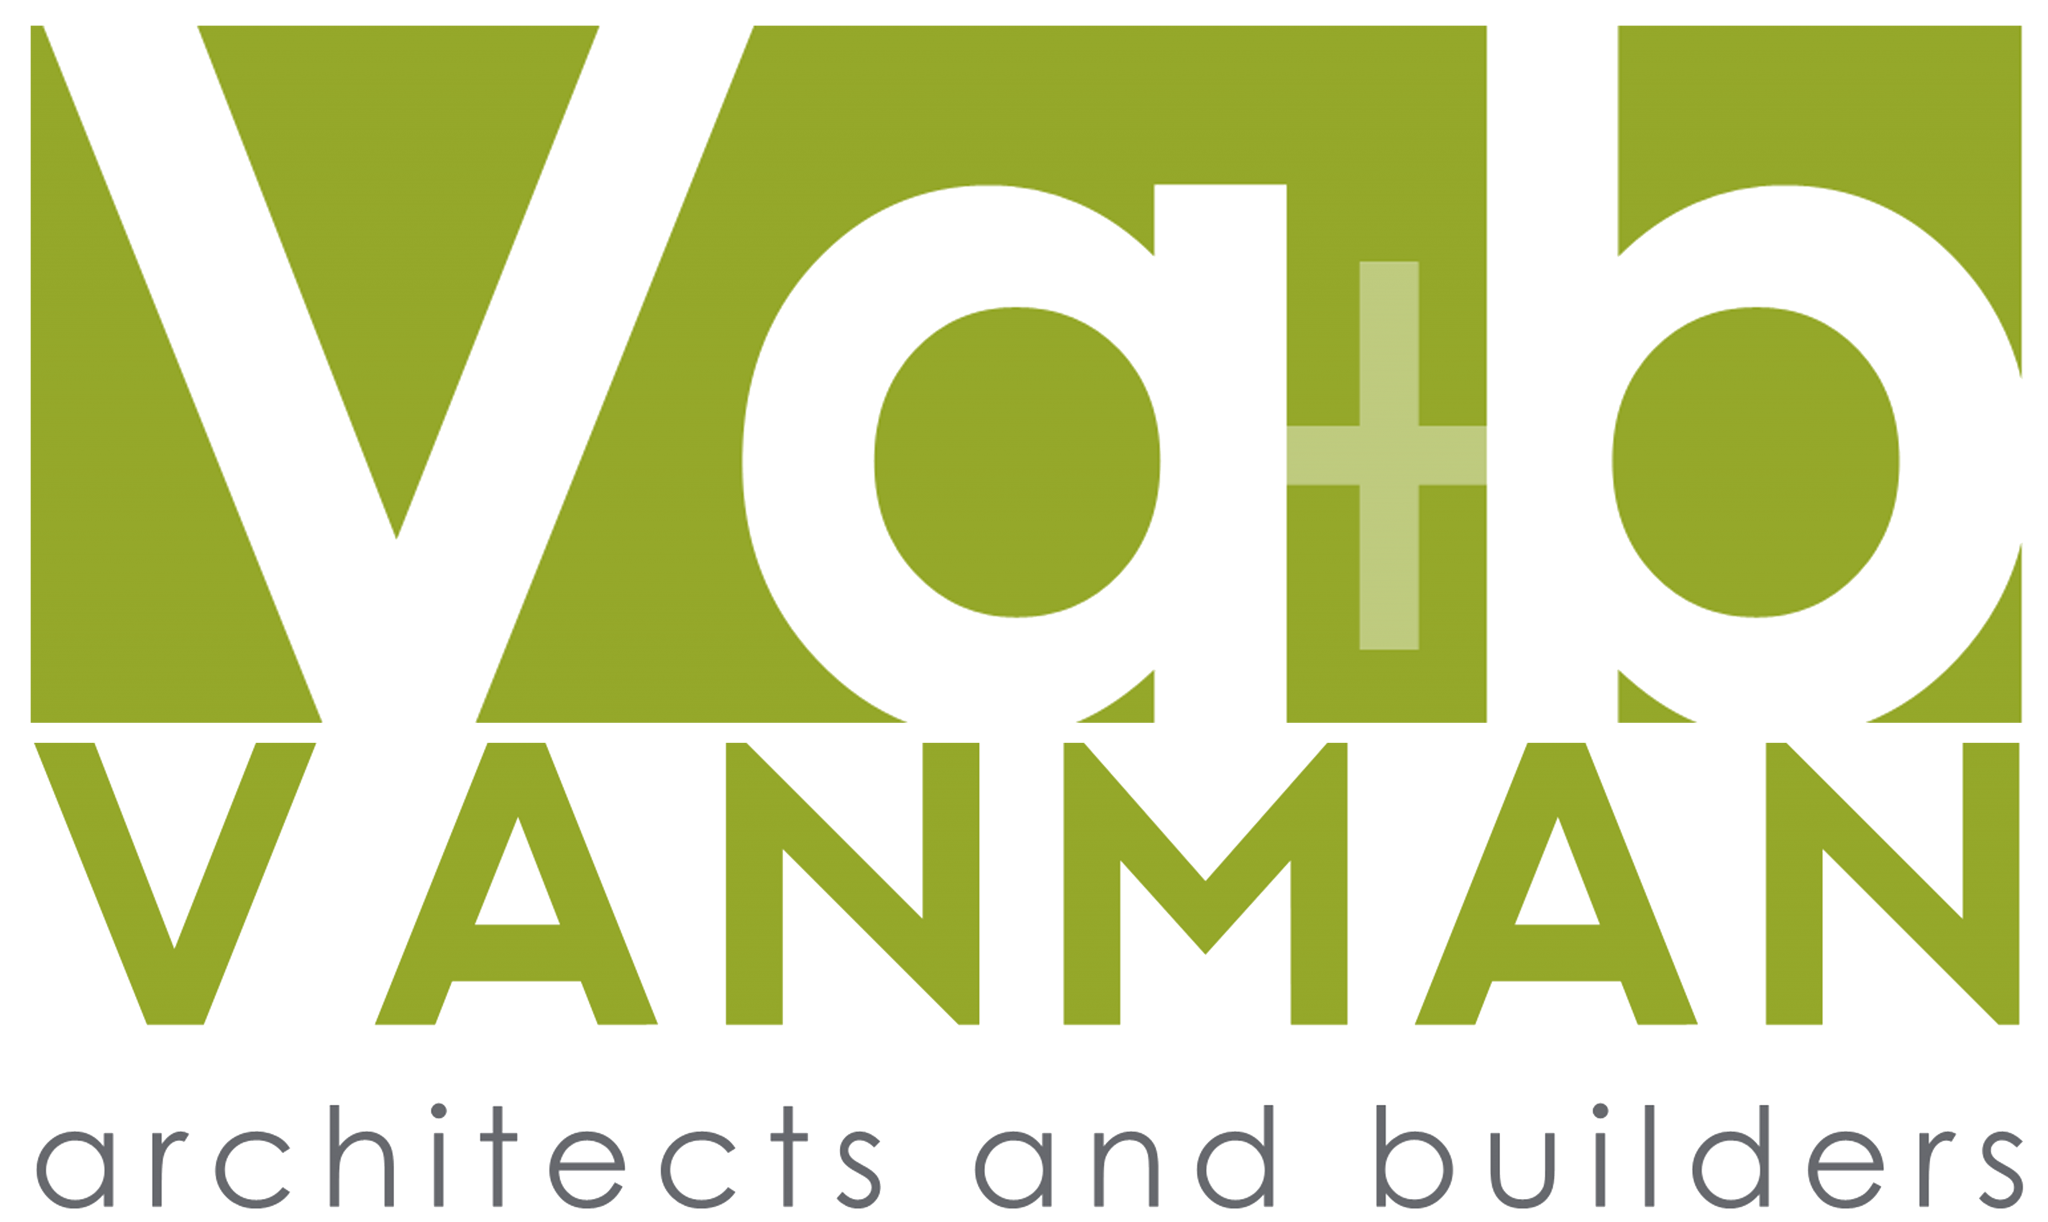 Vanman Architects & Builders